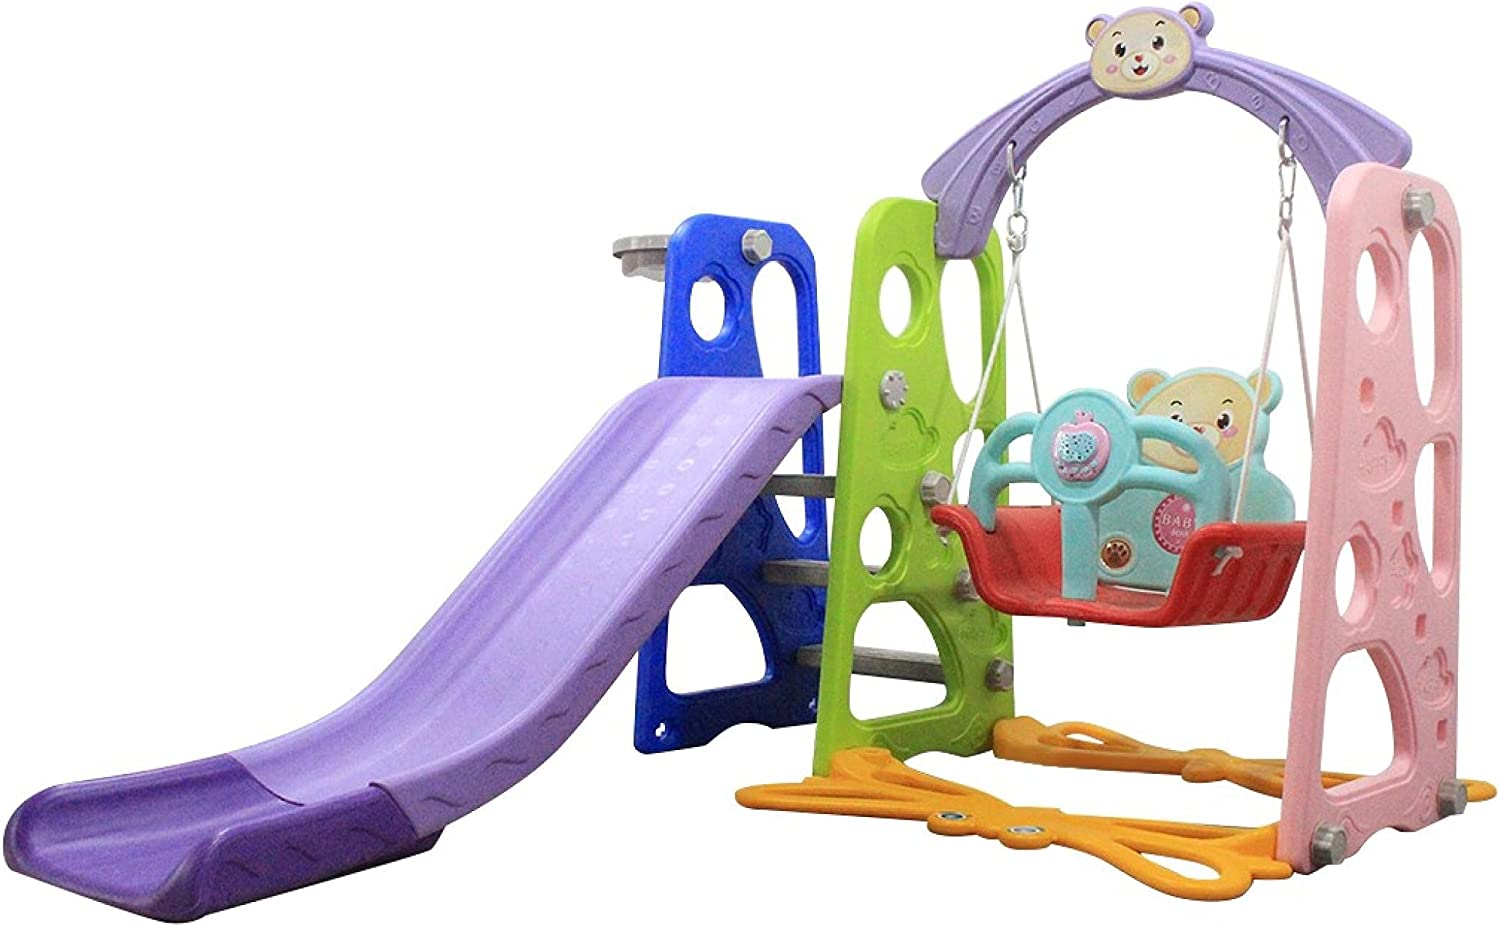 Toddler Slide and Swing Set Toddler Outdoor playset 4 in 1 Climb